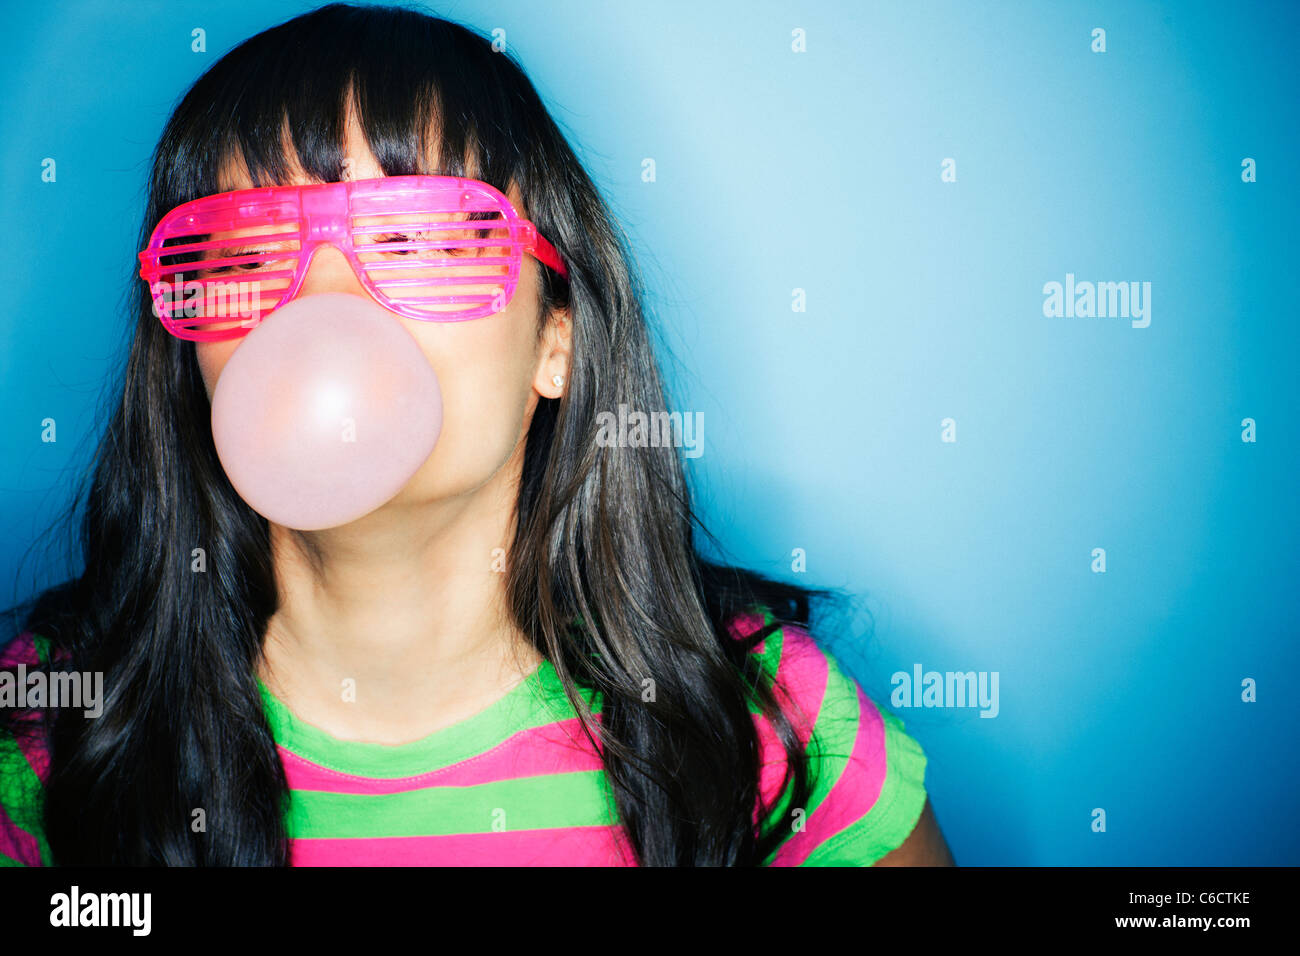 Mixed race woman blowing bubble with bubble gum Stock Photo